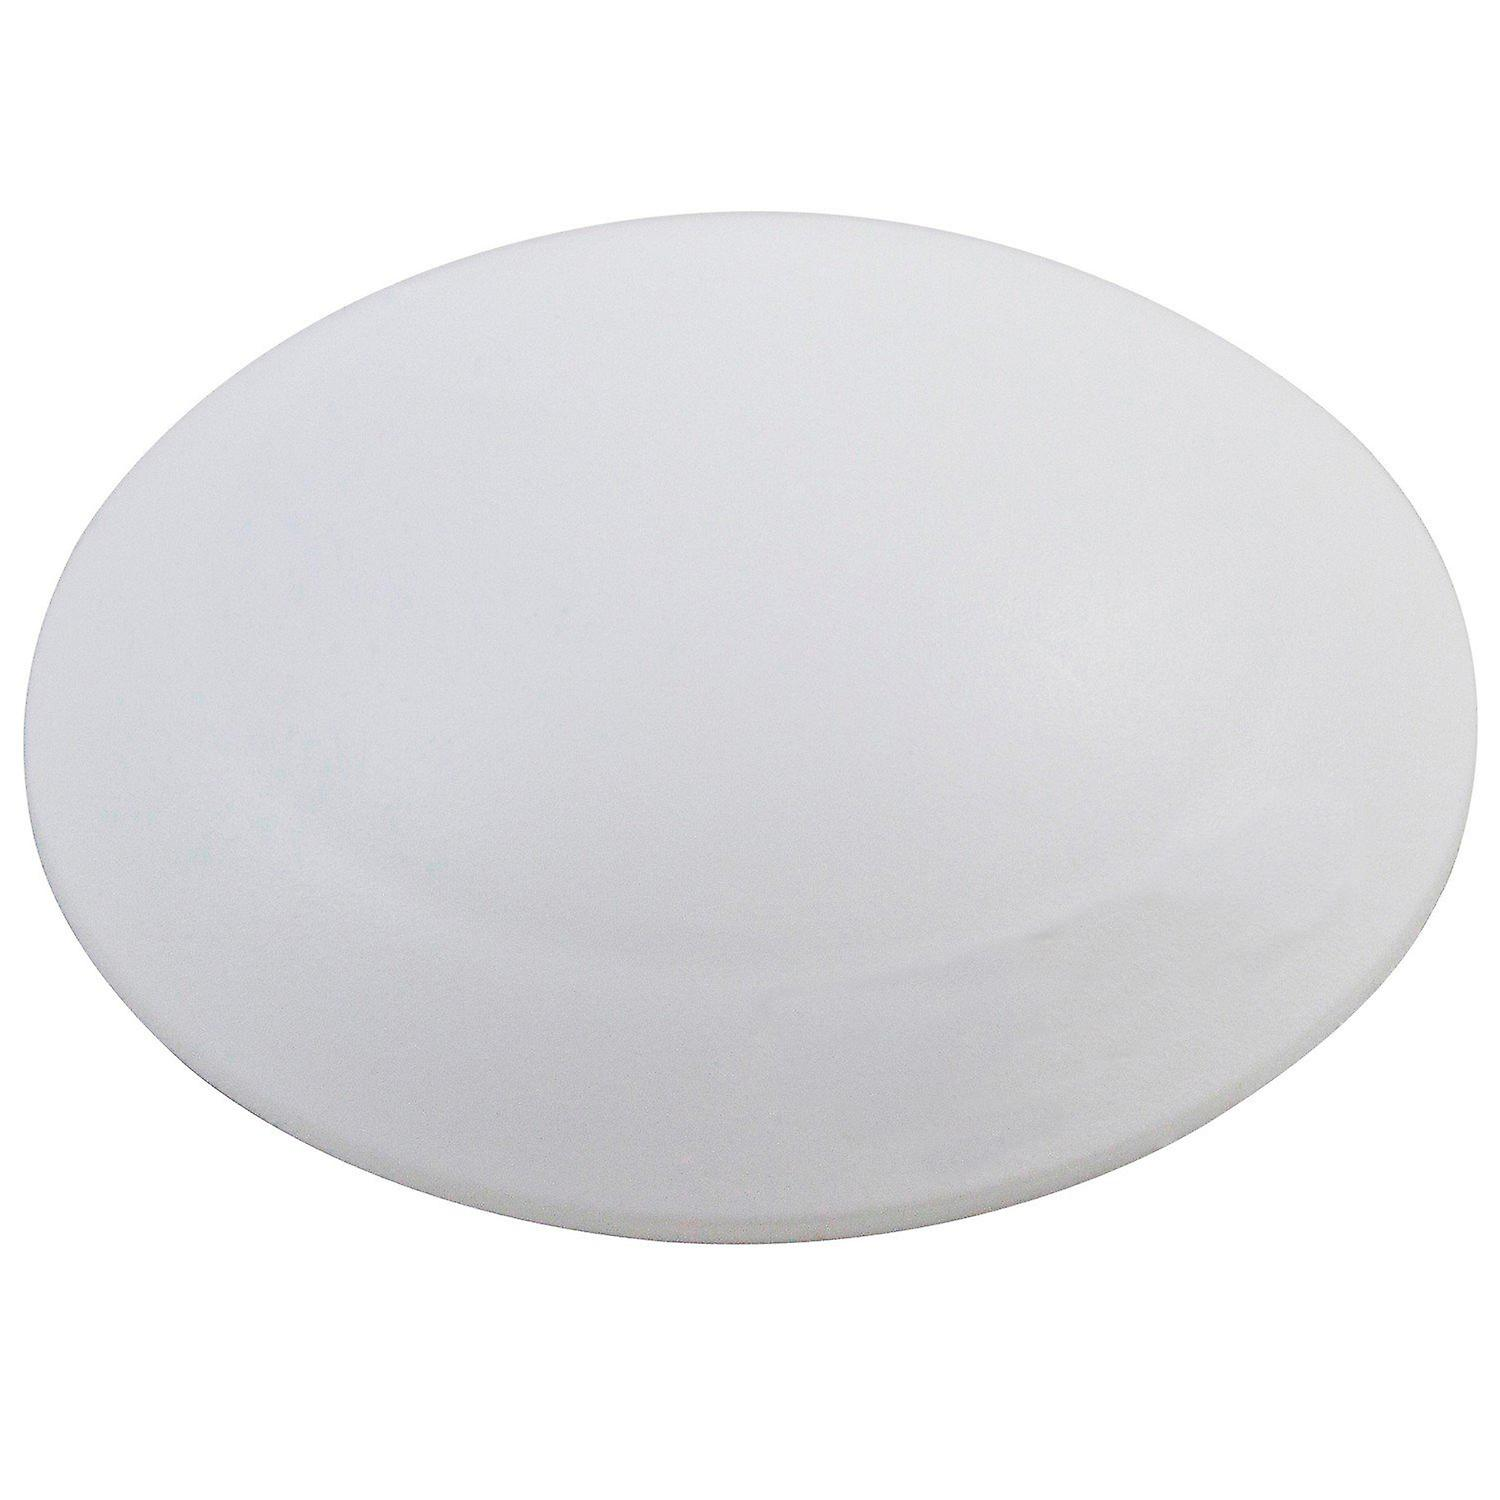 Self-adhesive Door Stops | Diameter: 4 Cm Height: 12mm | Self-adhesive | Colour: White | Set of 10